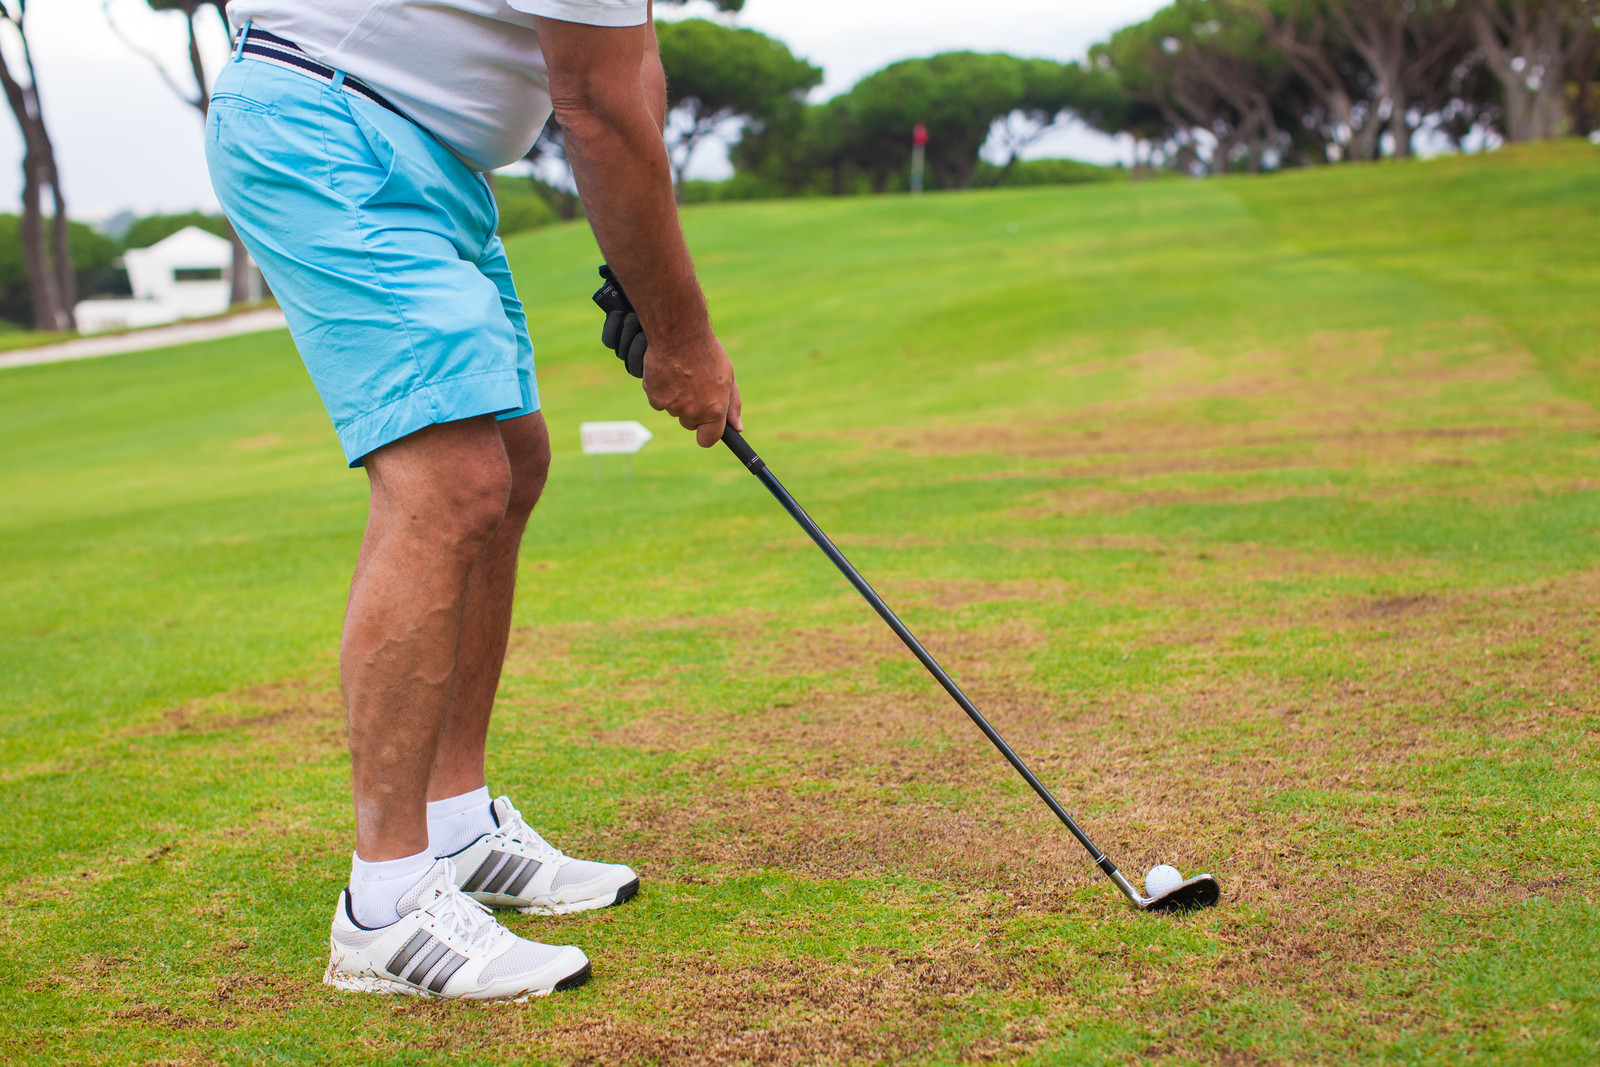 what is an up and down in golf?